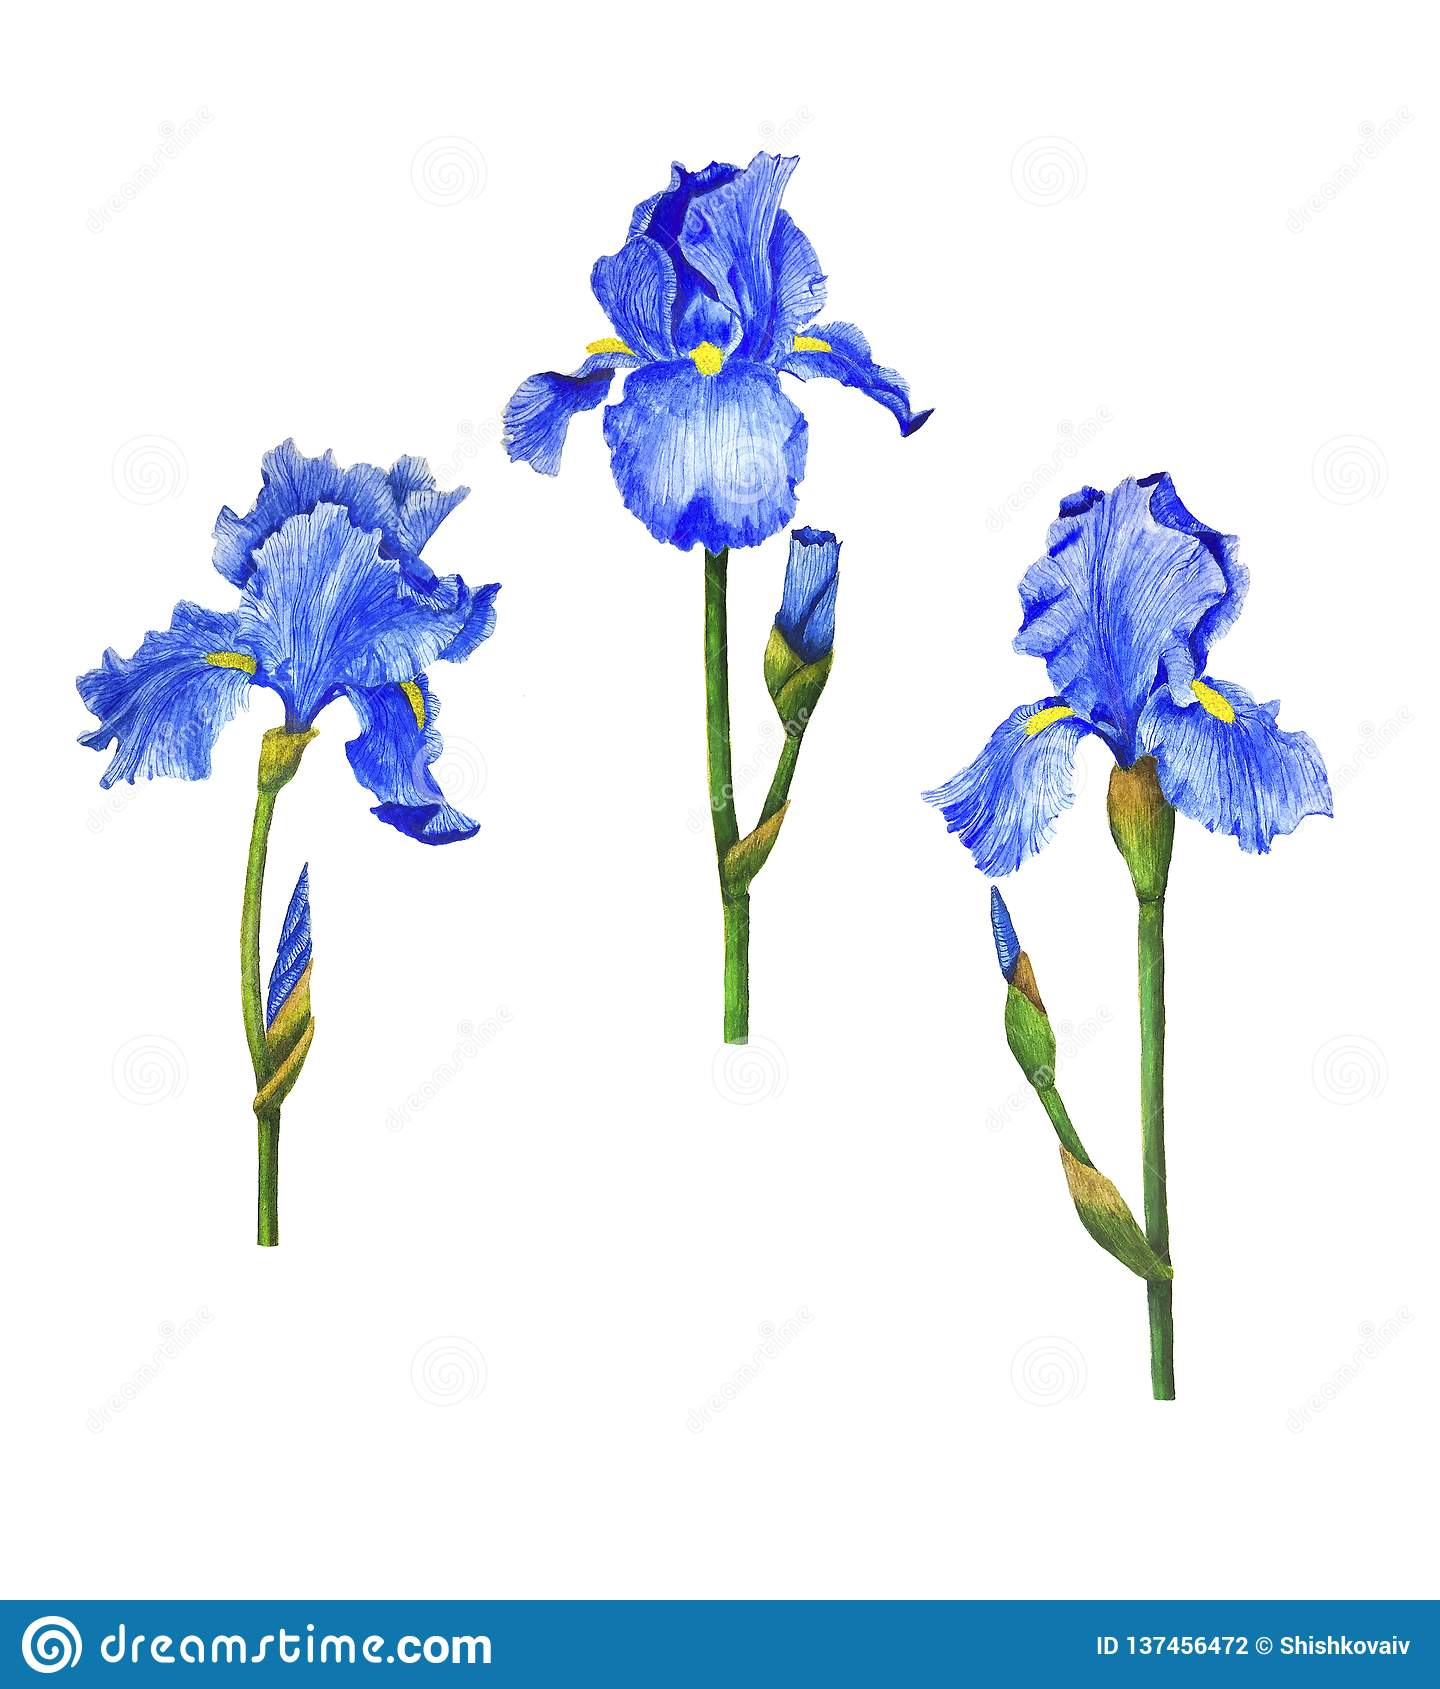 Irises flowers watercolor painting botanical illustration leaves spring summer set for design greeting card invitation